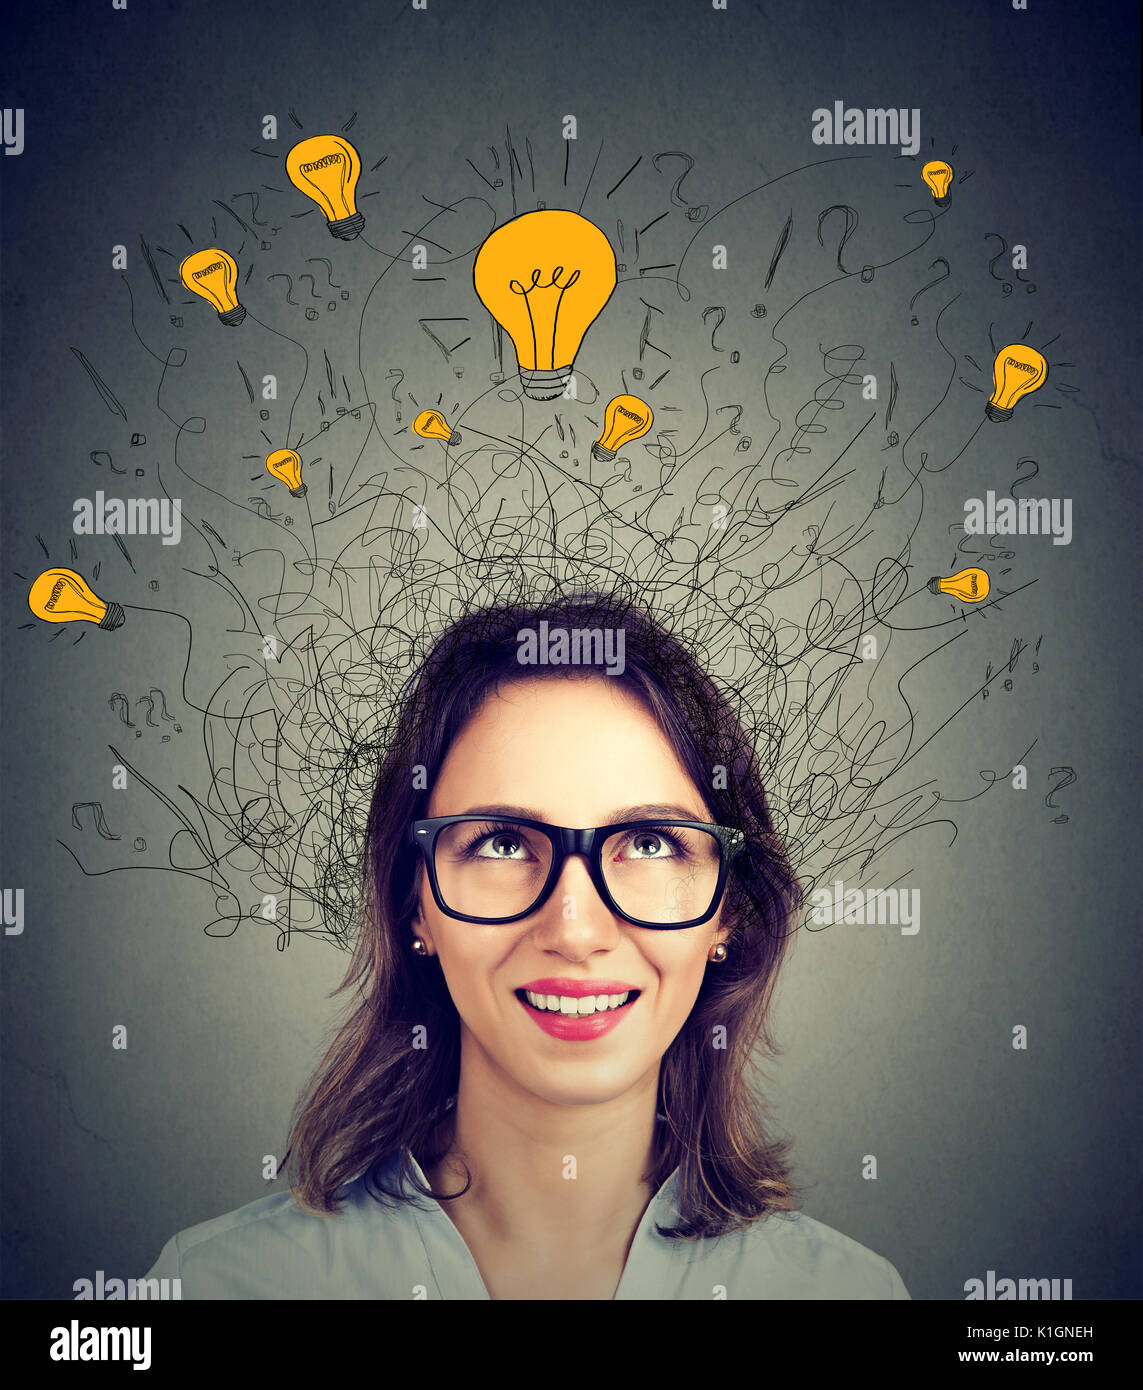 Young woman in glasses with many ideas light bulbs above head looking up isolated on gray wall background. Eureka creativity concept - Stock Image